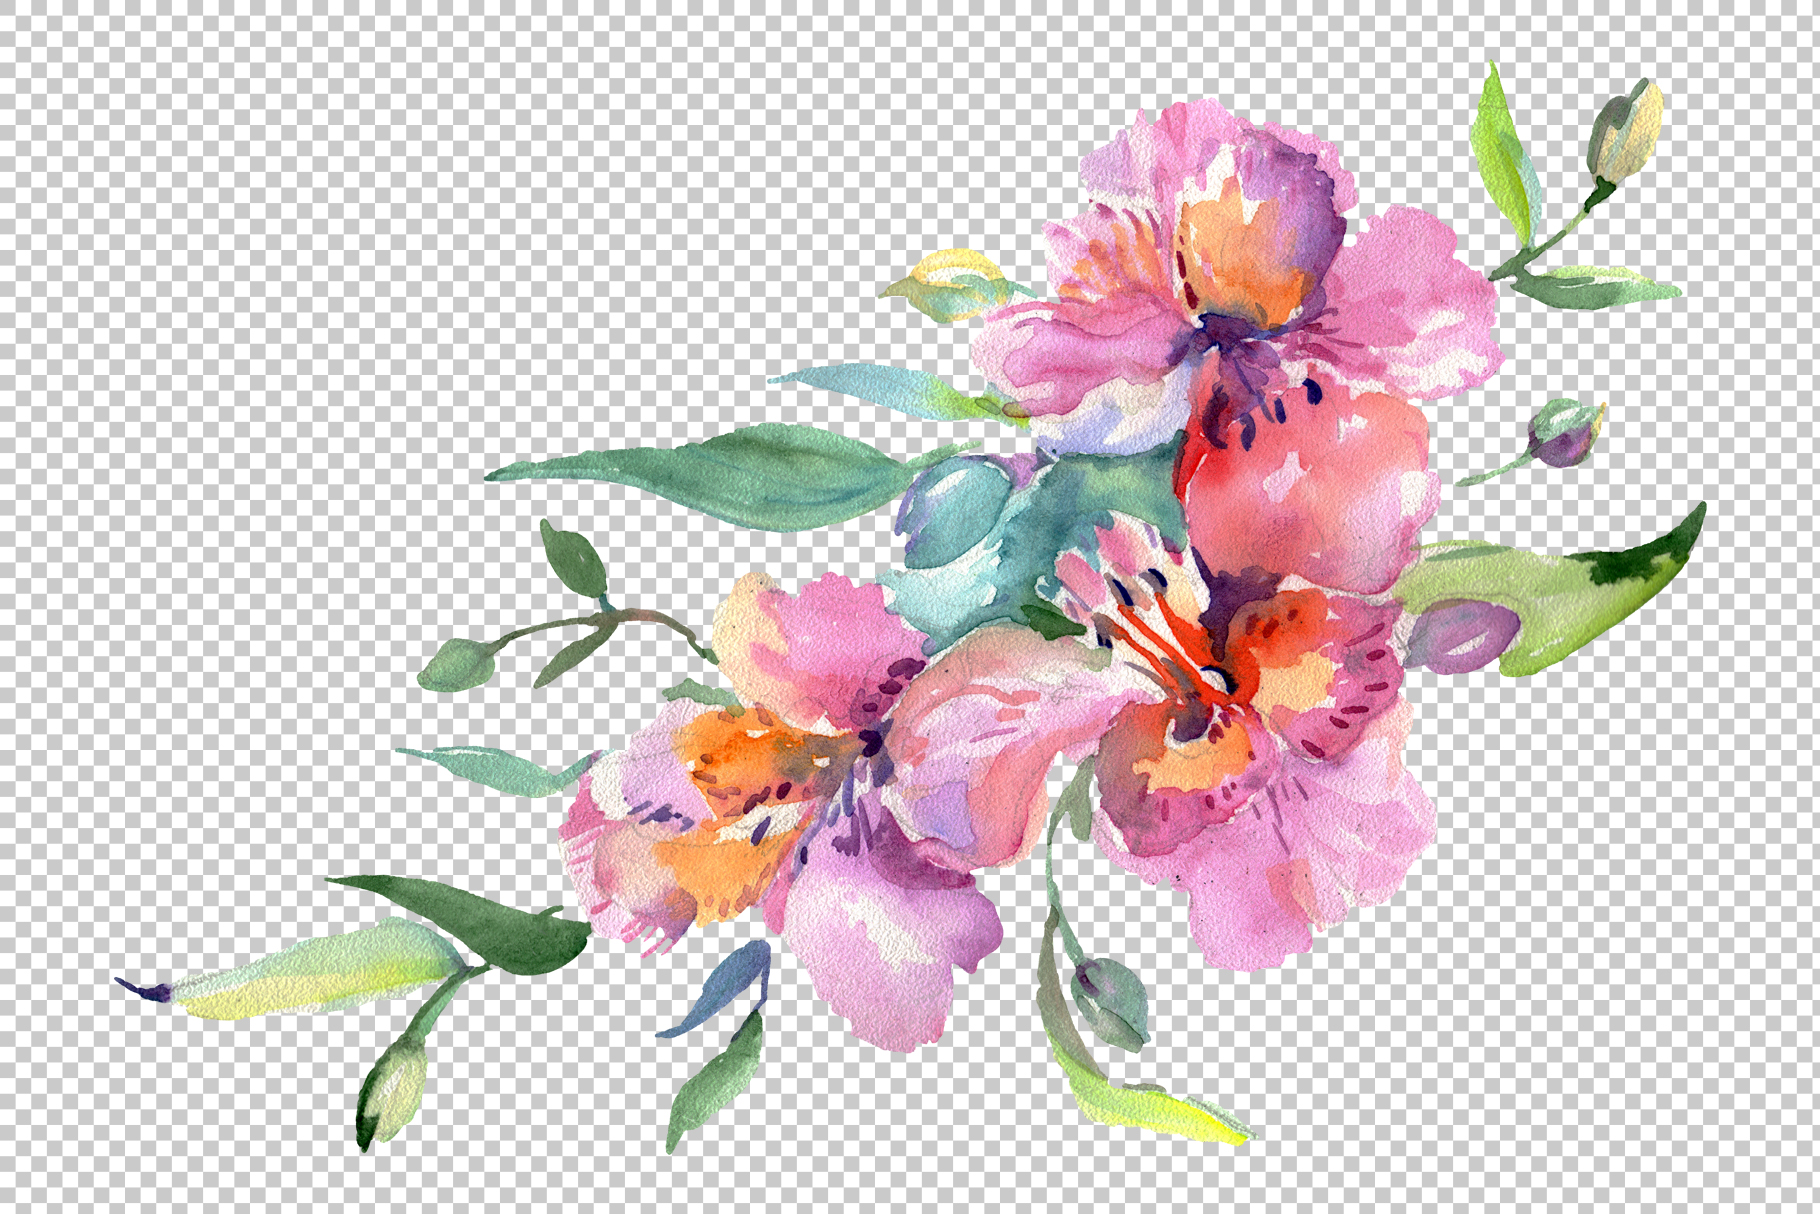 Bouquet of flowers matures feelings watercolor png example image 4